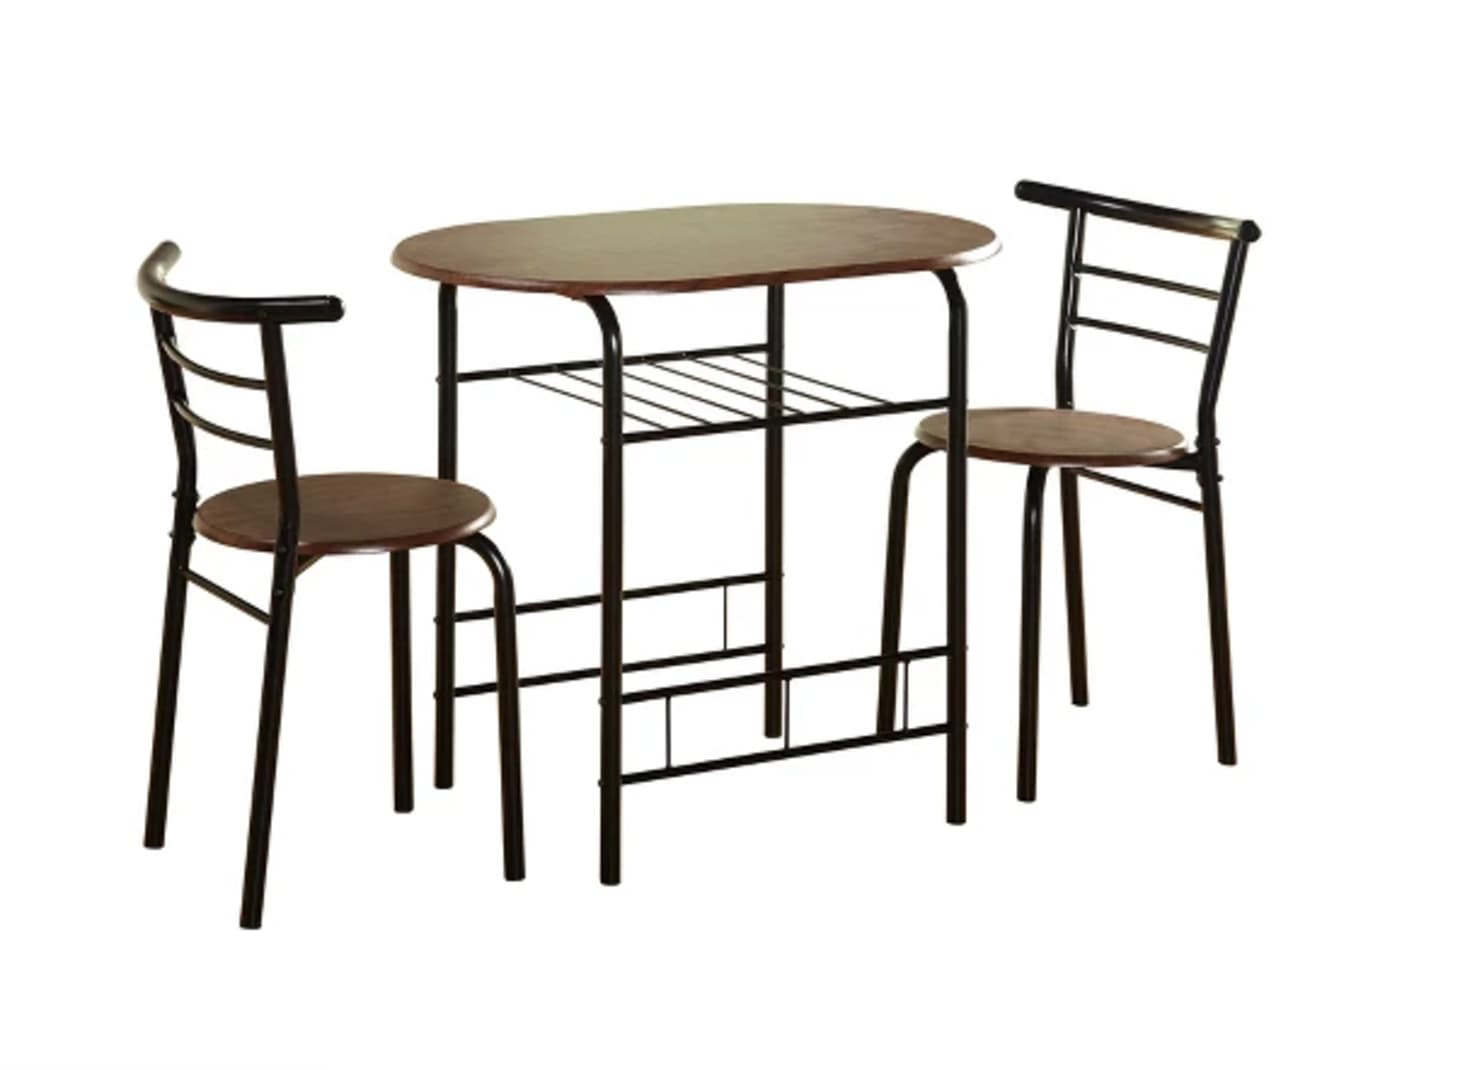 Groovy Dining Table And Chair Sets For Small Spaces Kitchn Andrewgaddart Wooden Chair Designs For Living Room Andrewgaddartcom